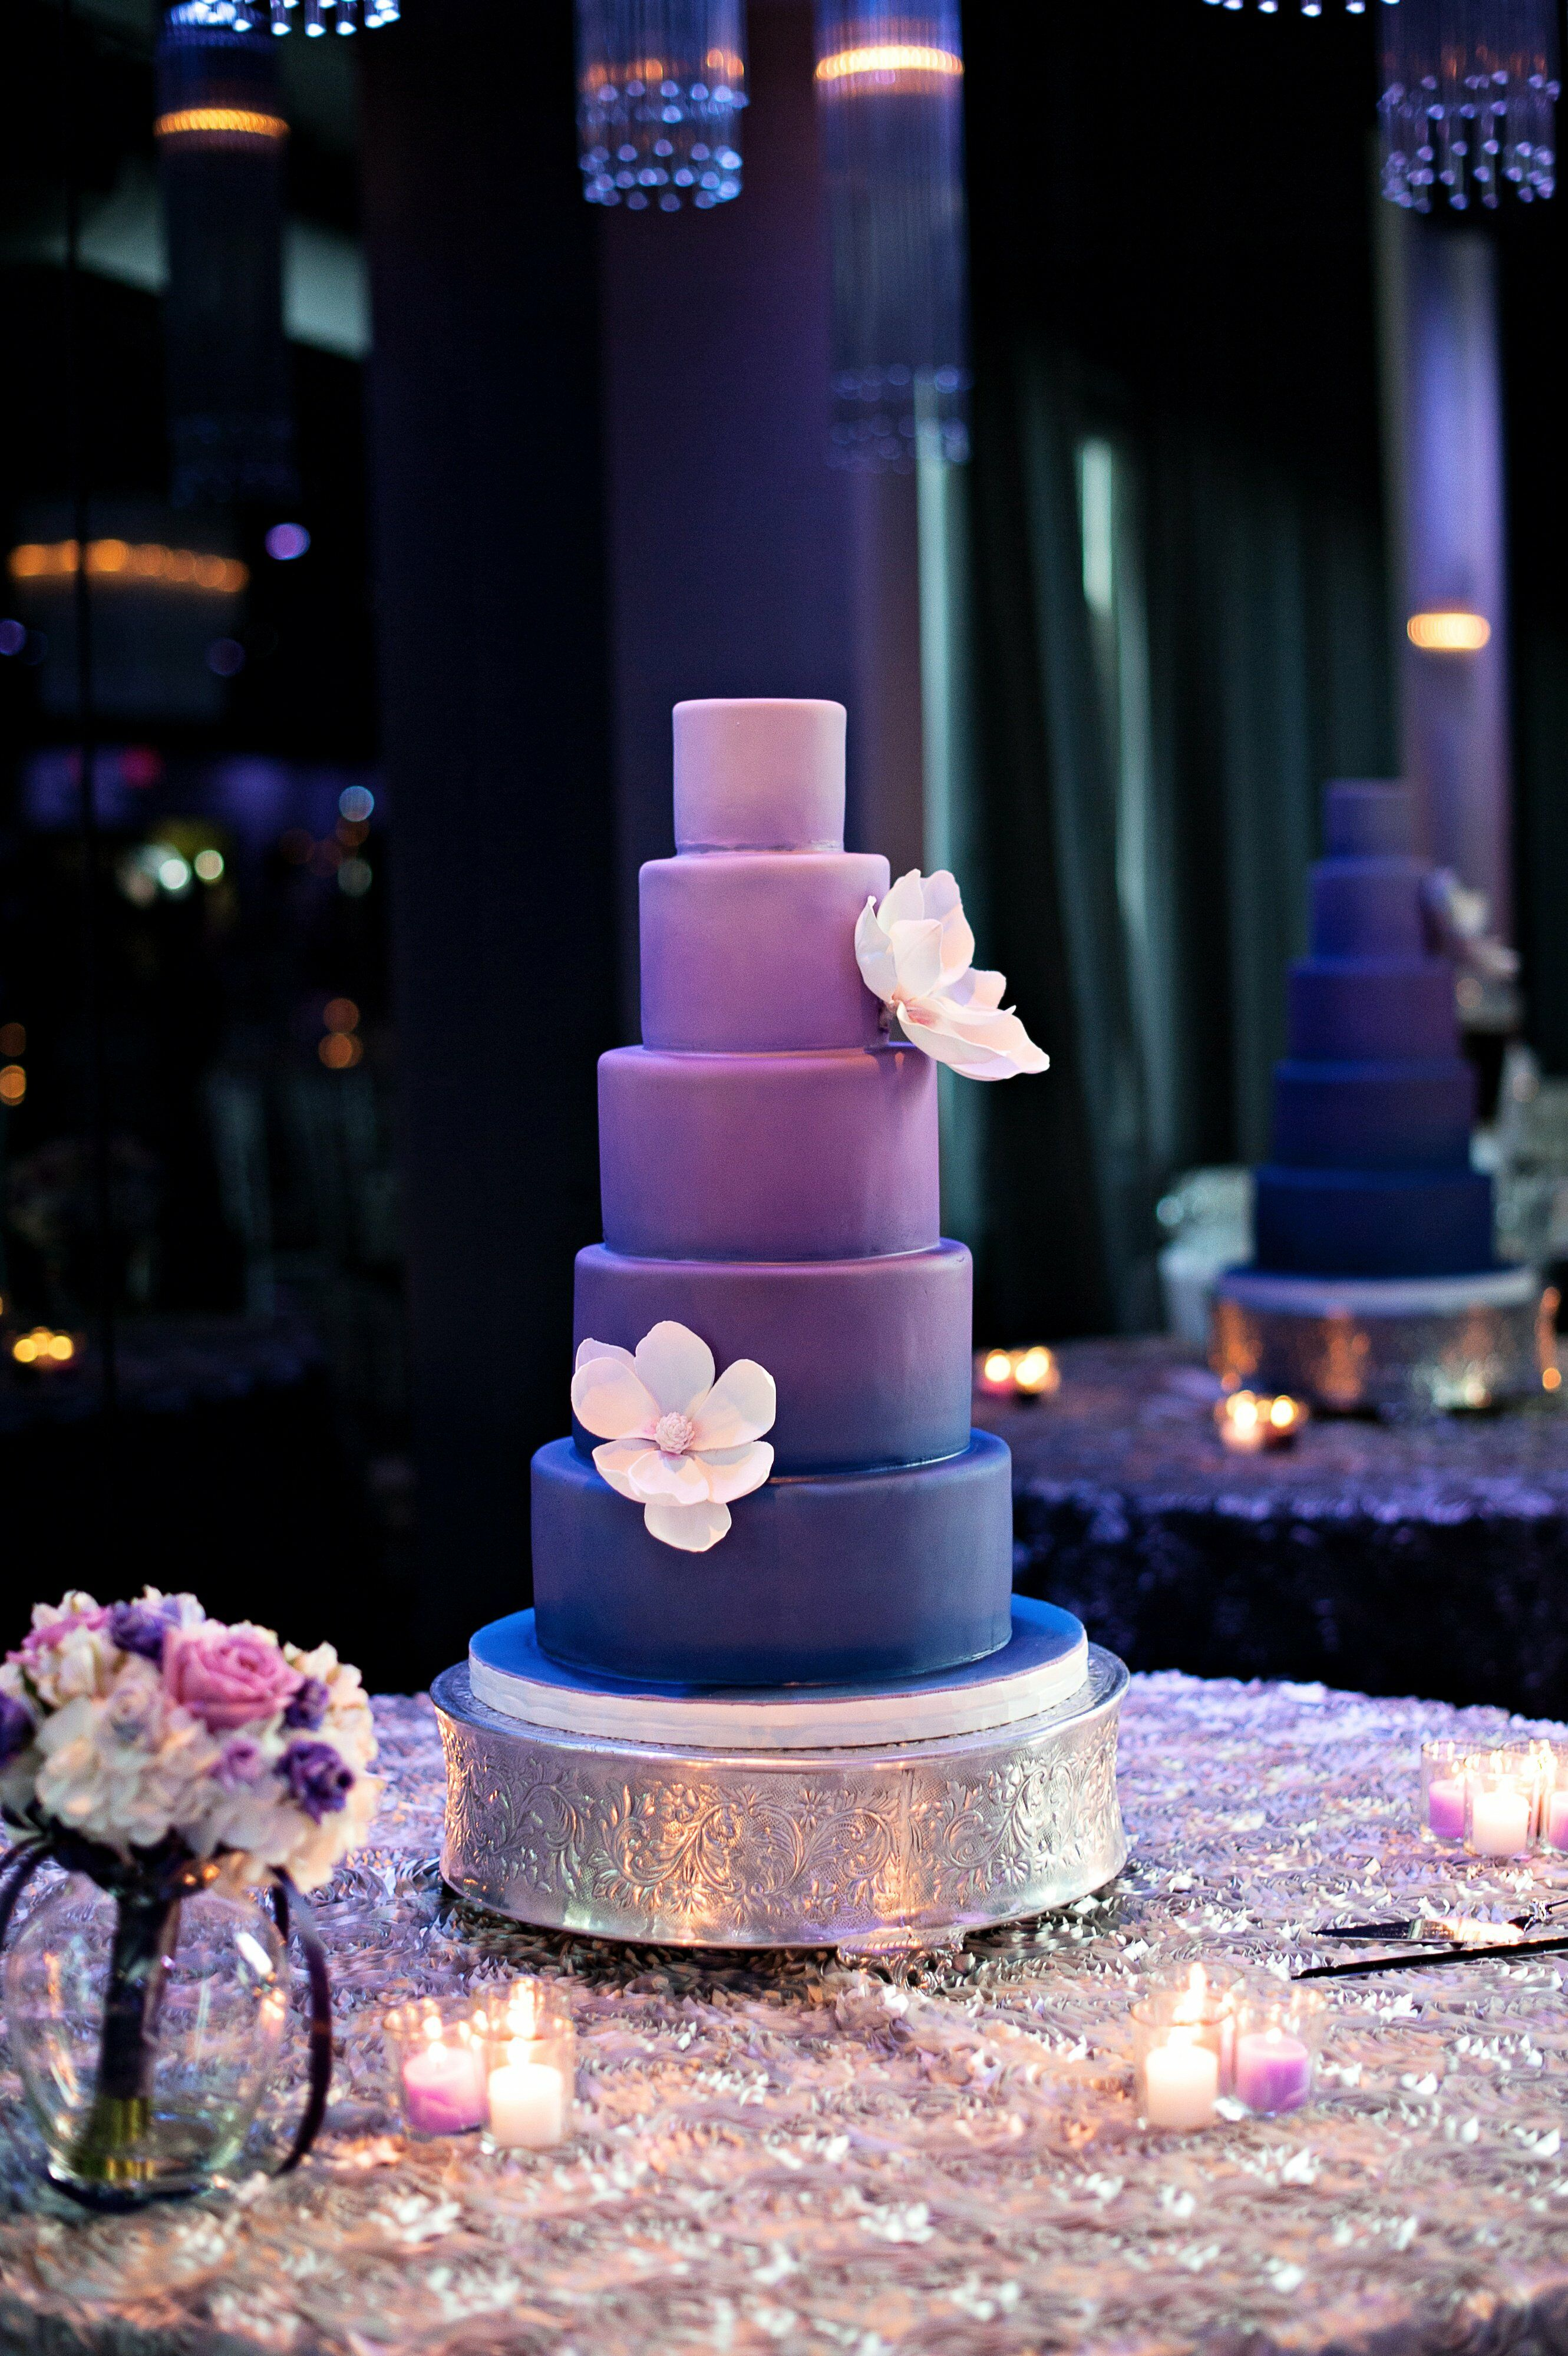 violet bakery wedding cakes pictures purple ombre wedding cake 21622